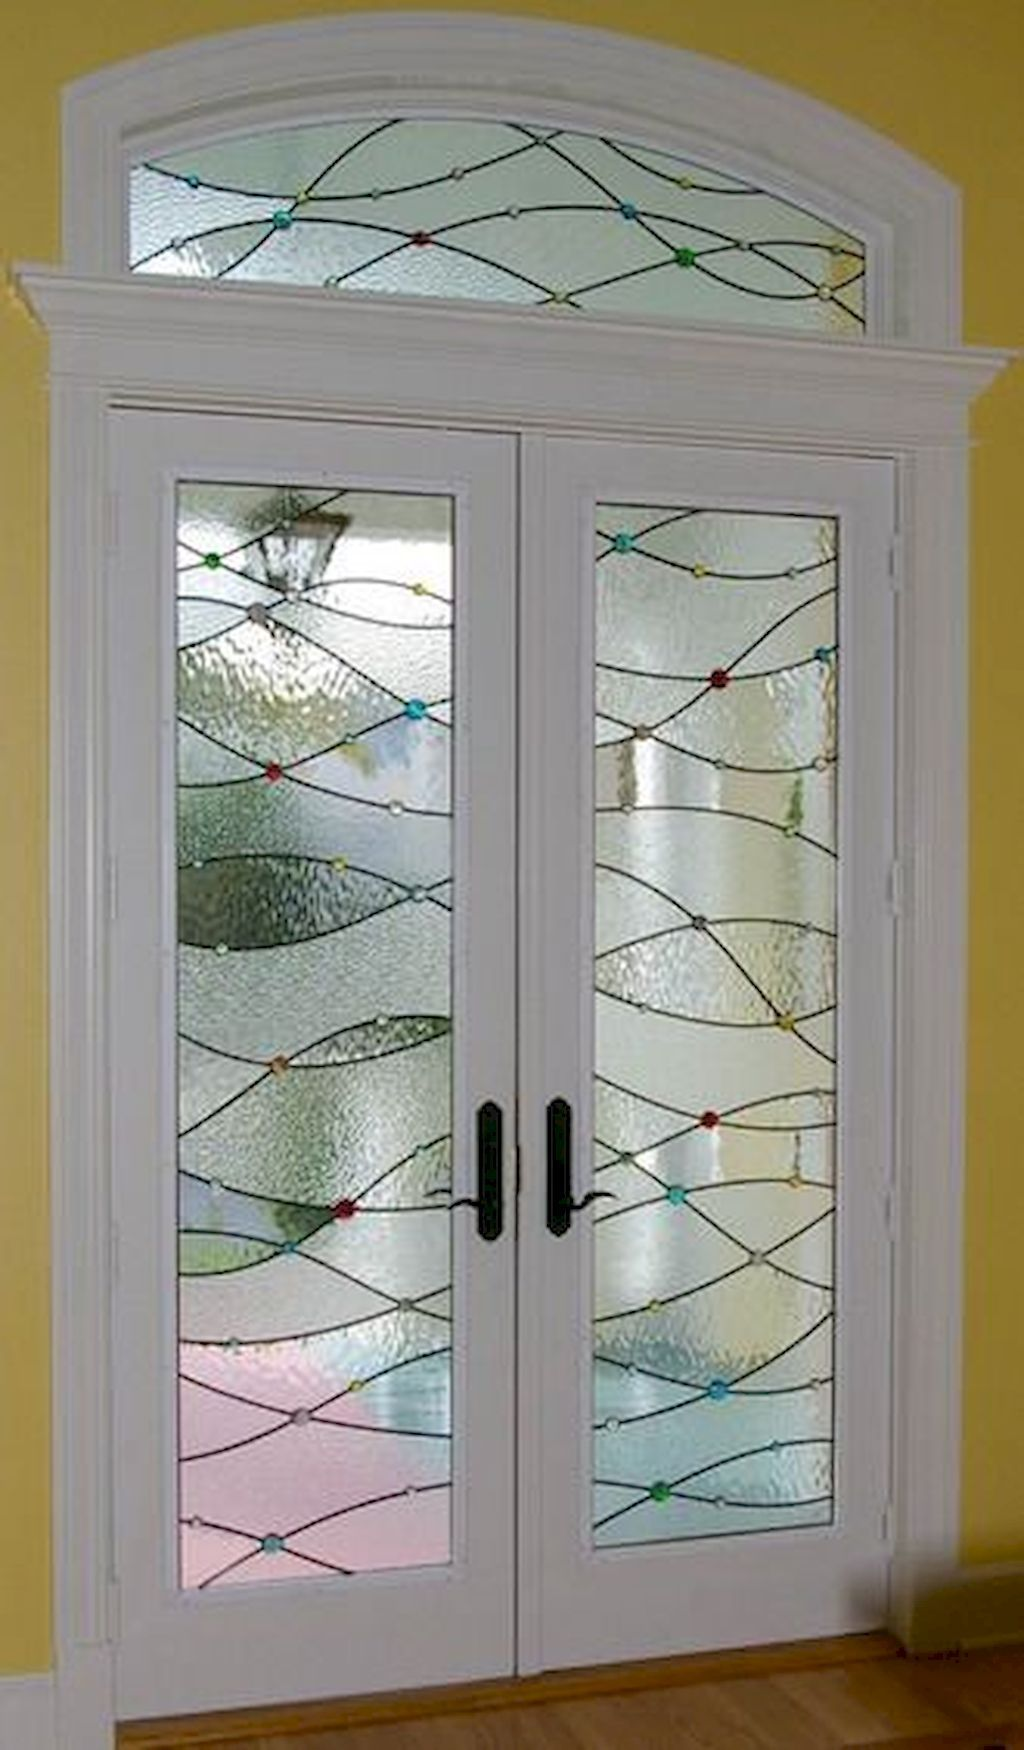 Glass windows and doors   Awesome Decorative Glass Doors Ideas  Home Decor  Pinterest